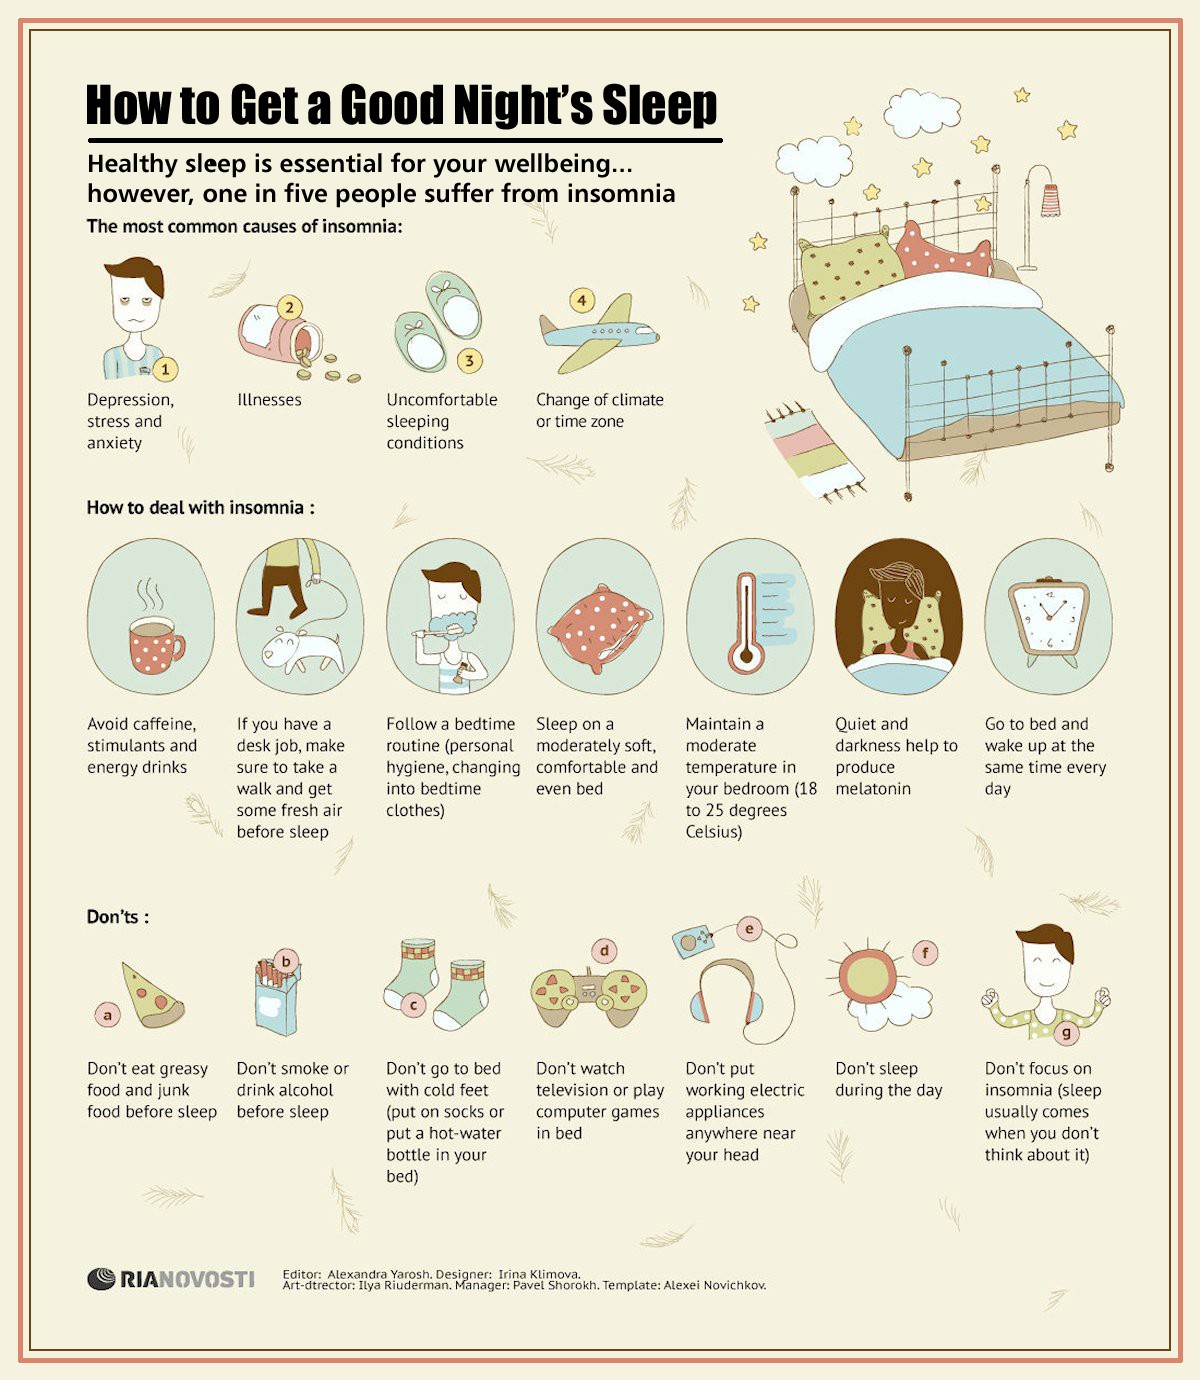 00 RIA-Novosti Infographics. How to Get a Good Night's Sleep. 2013